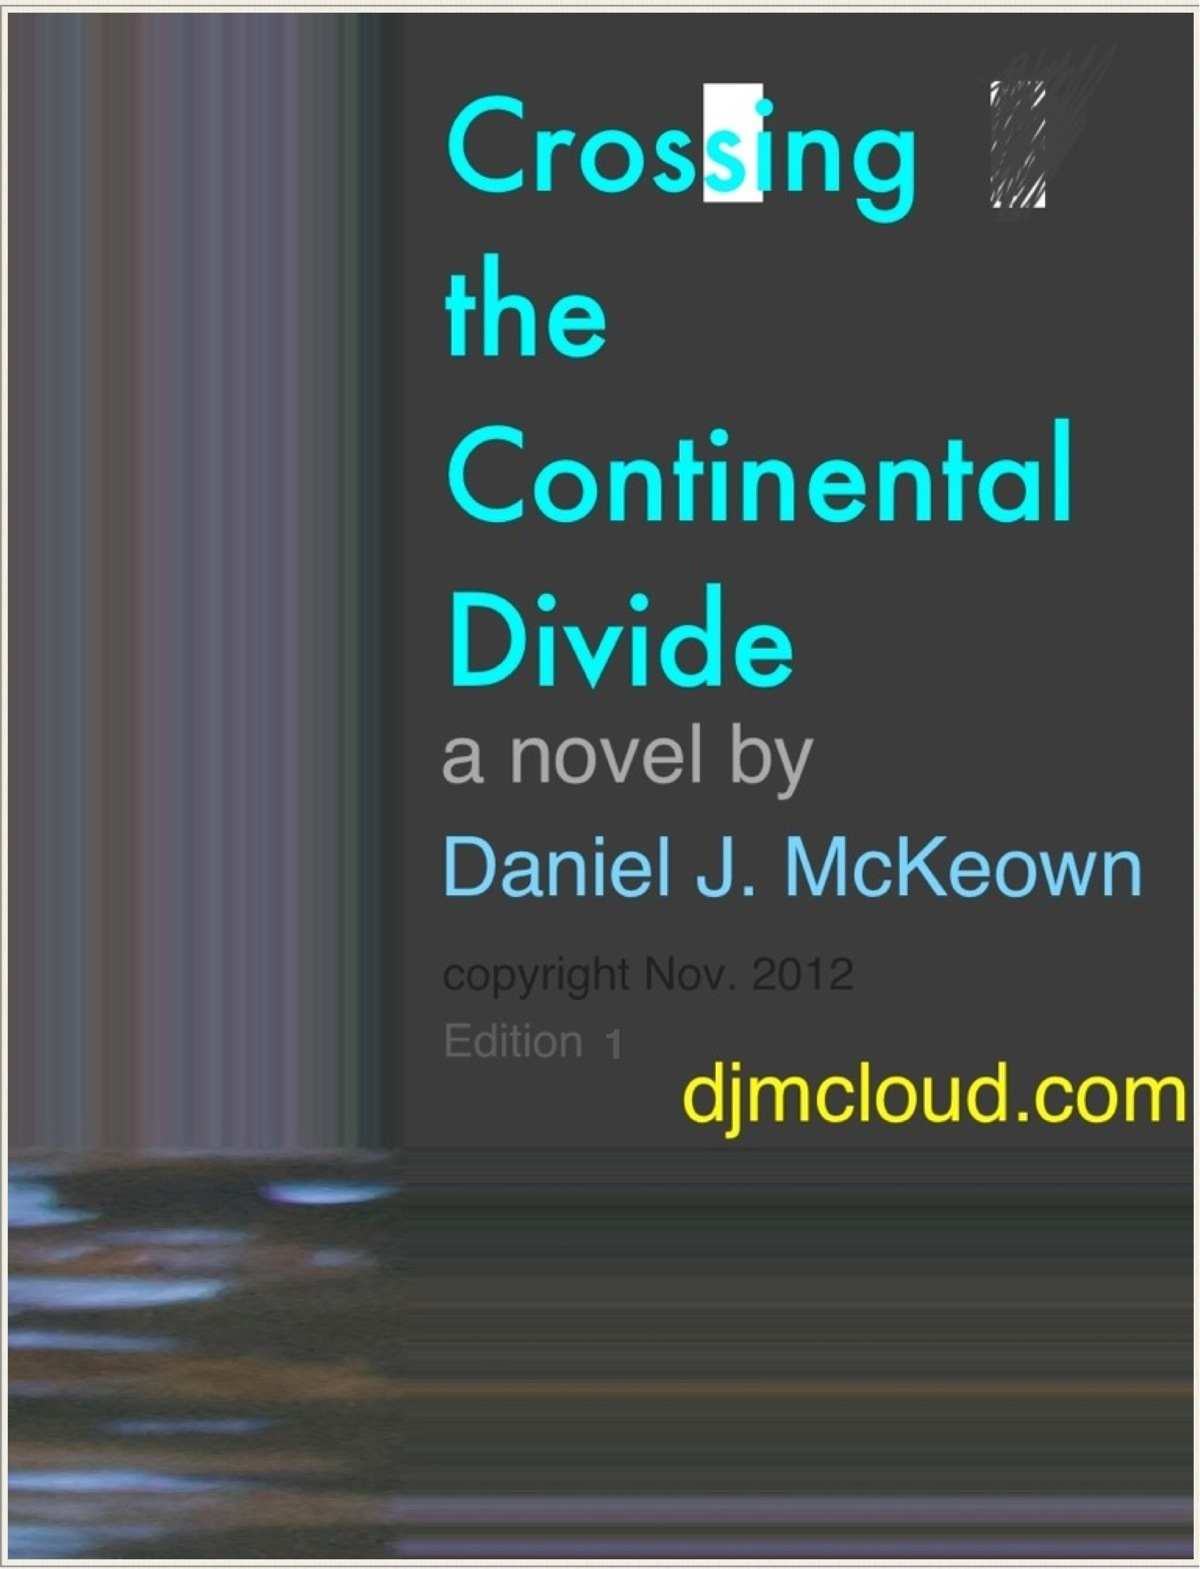 Crossing the Continental Divide: a novel by Daniel J. McKeown